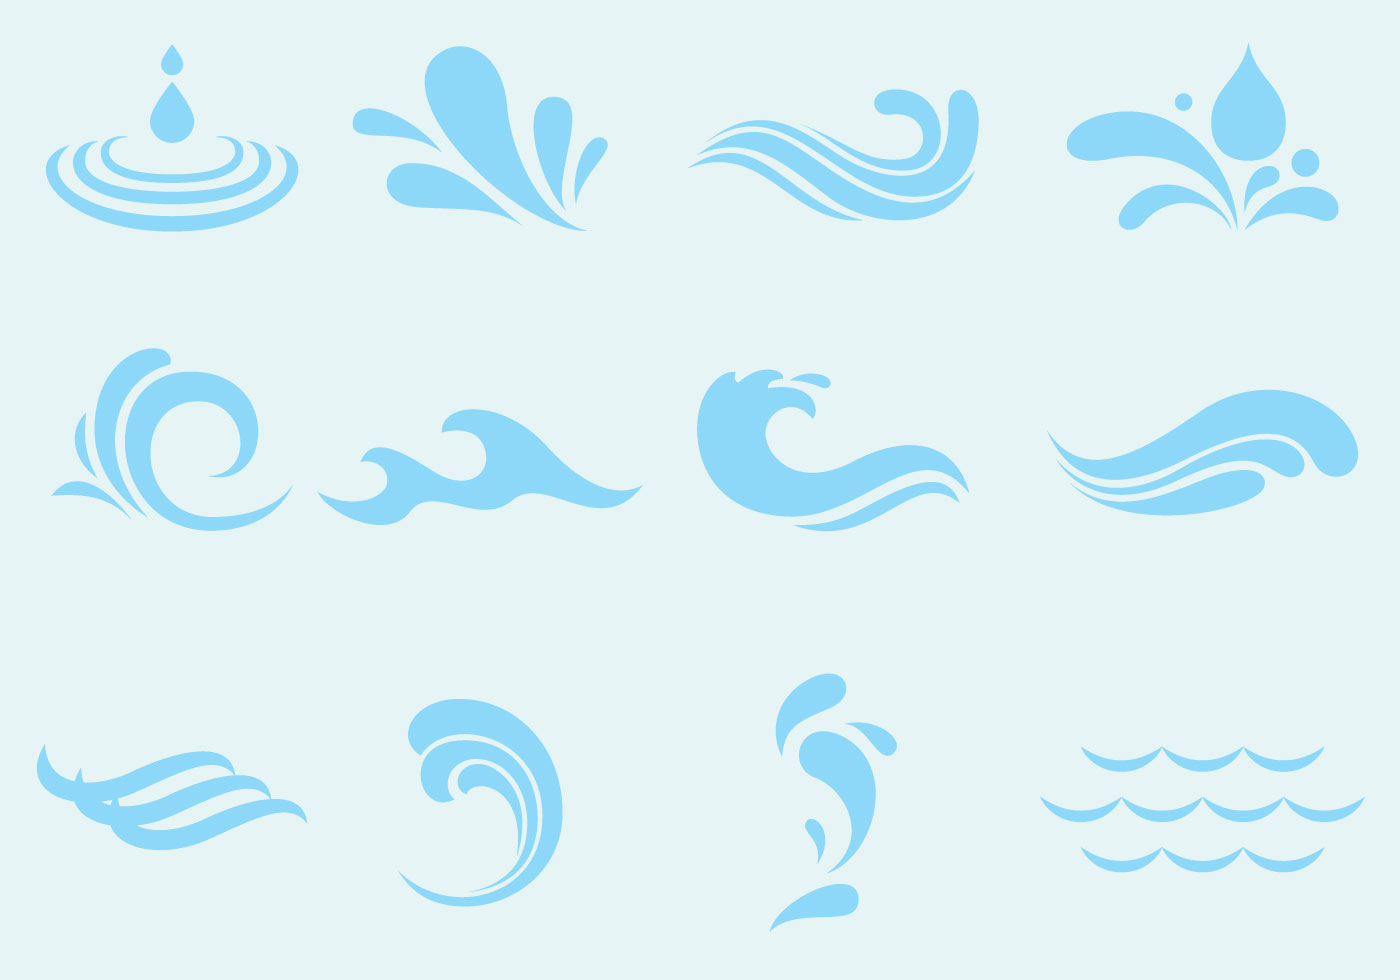 Waves free vector art 8220 free downloads vector agua wave and splash icons amipublicfo Images